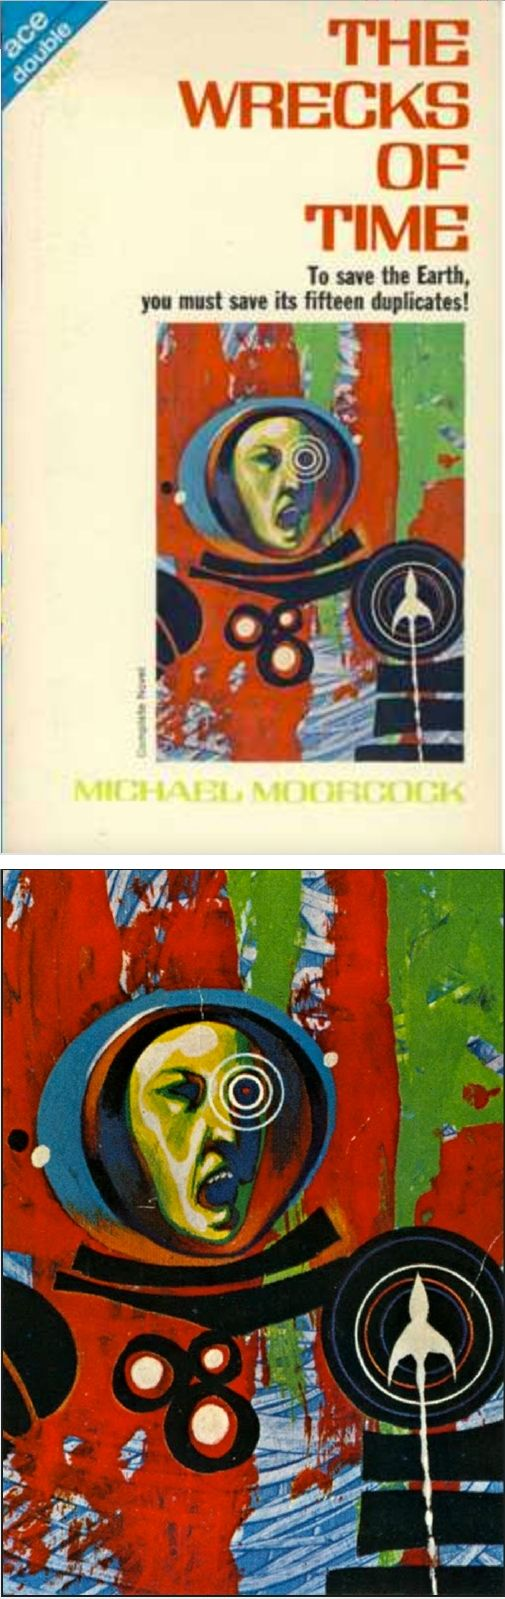 Jack Gaughan  The Wrecks Of Time By Michael Moorcock  1967 Ace Double H